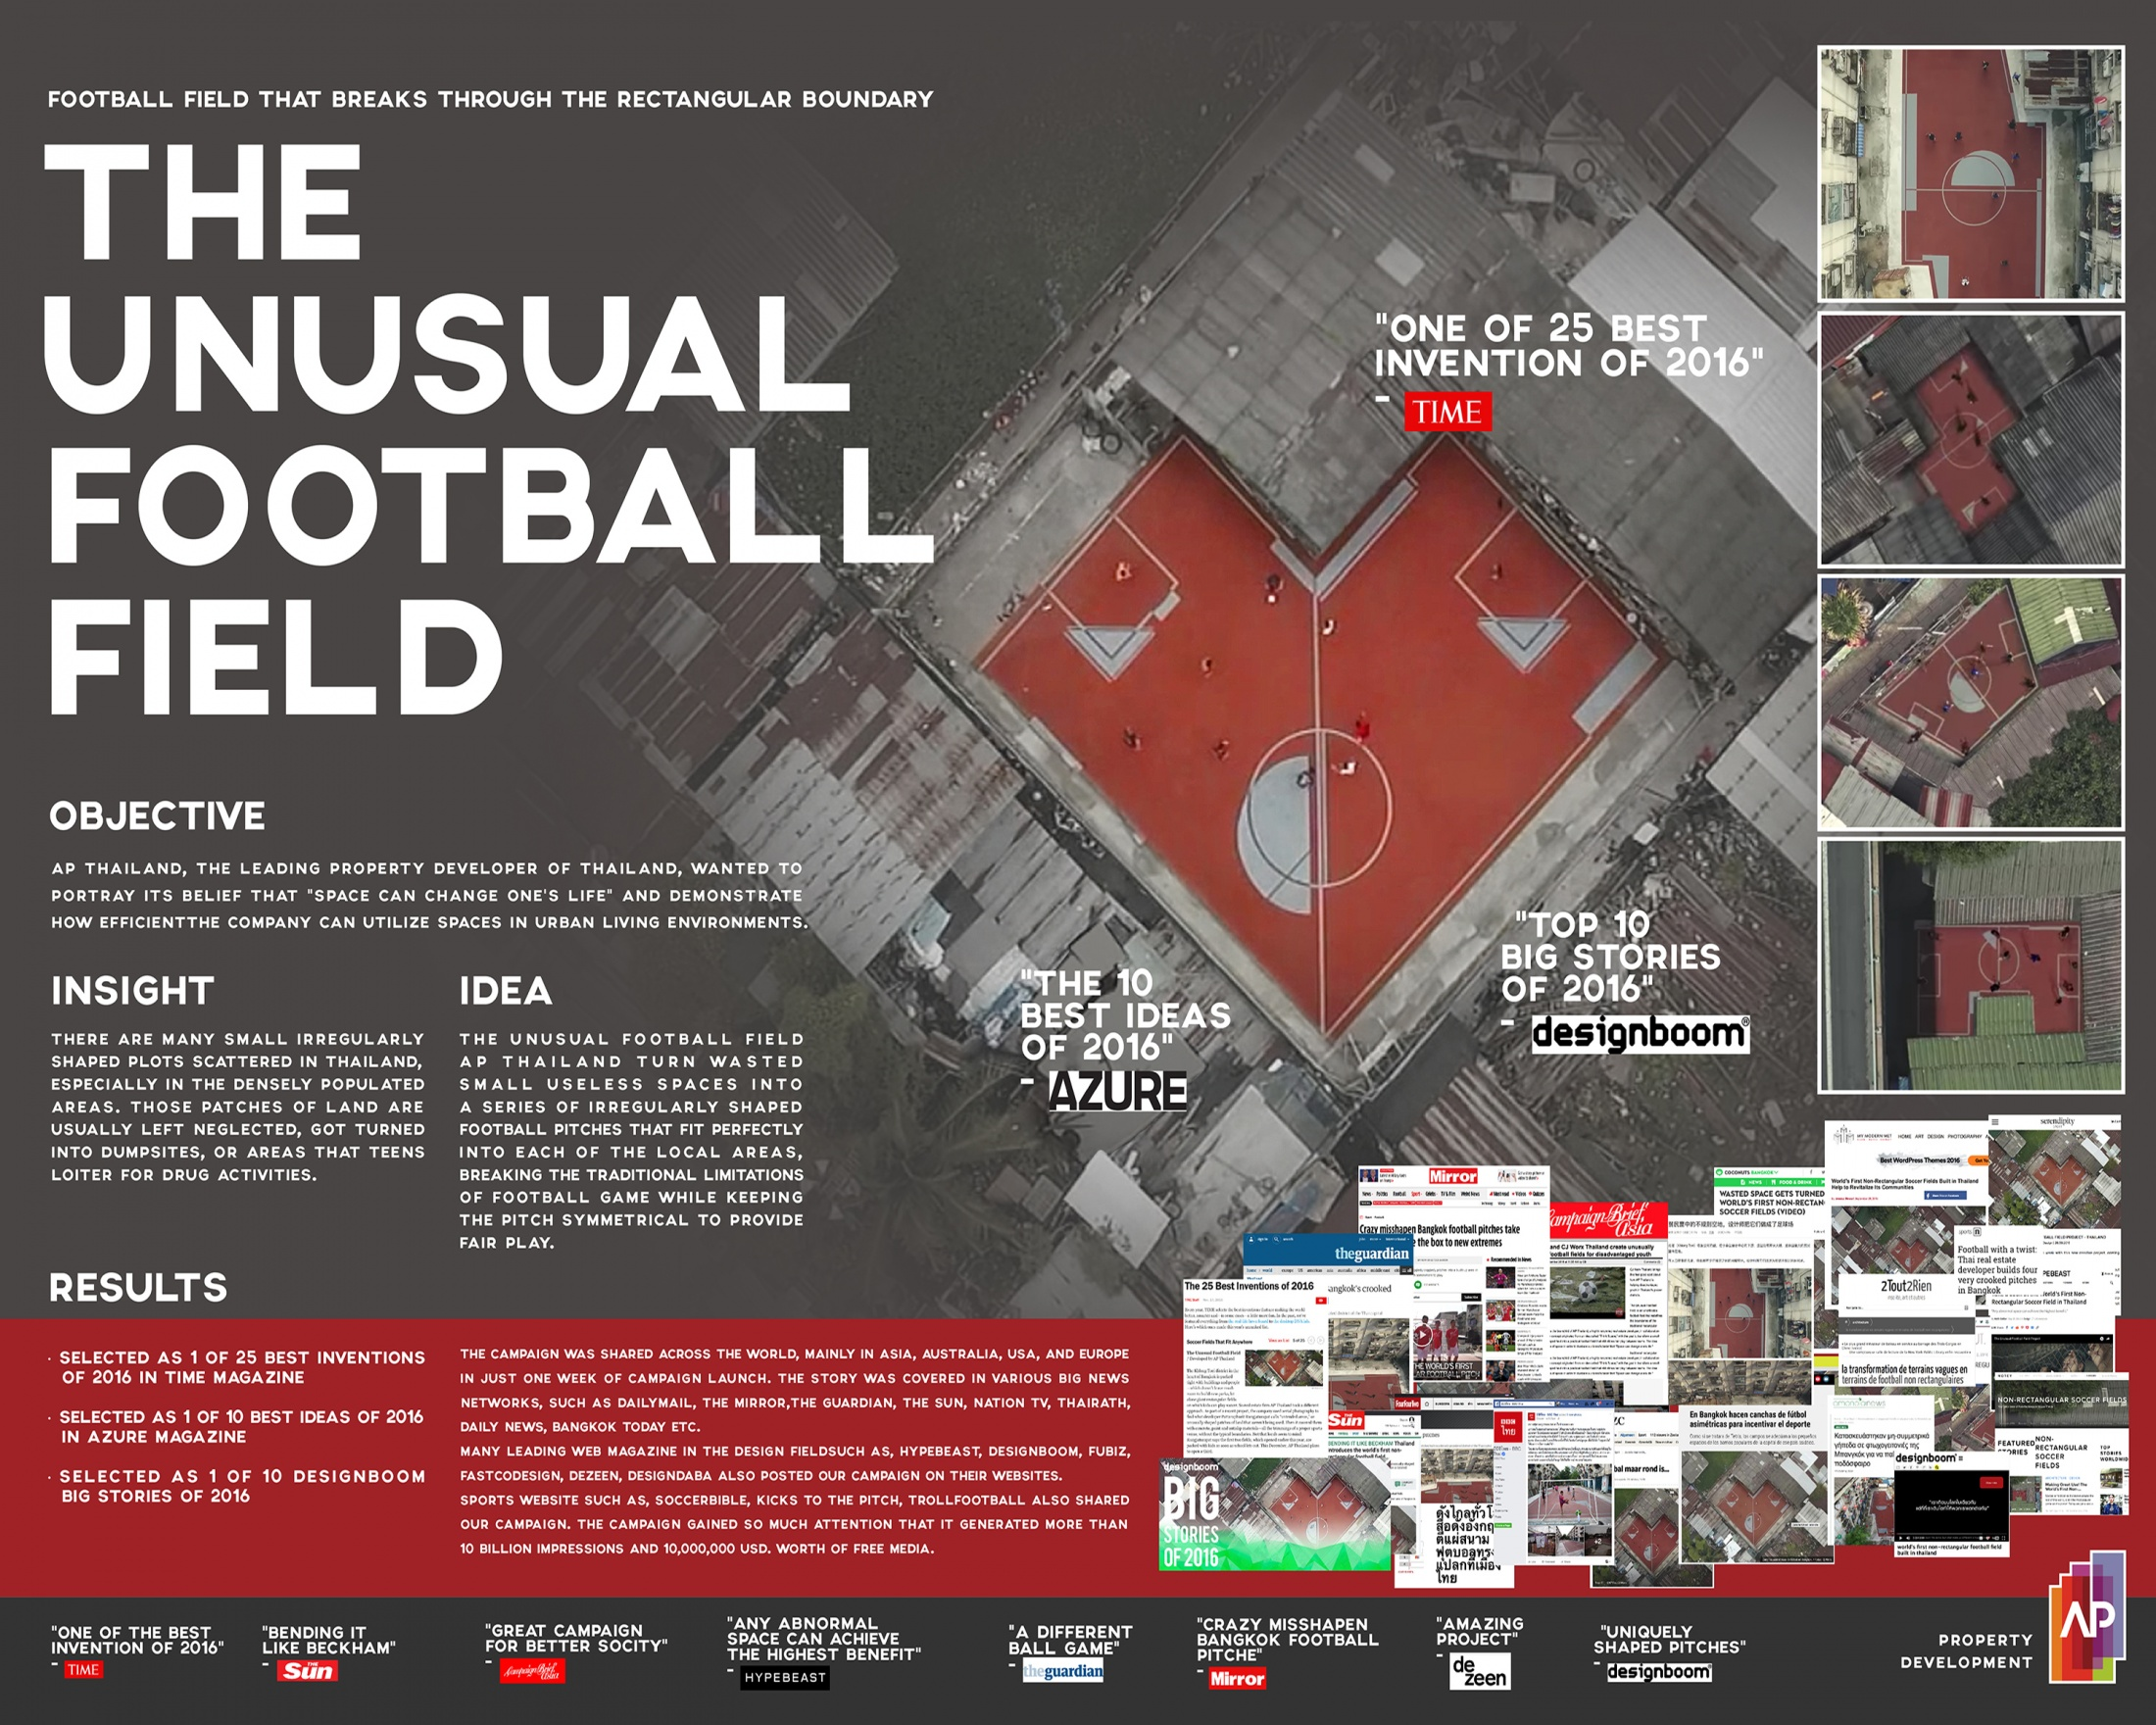 Thumbnail for The Unusual Football Field Project